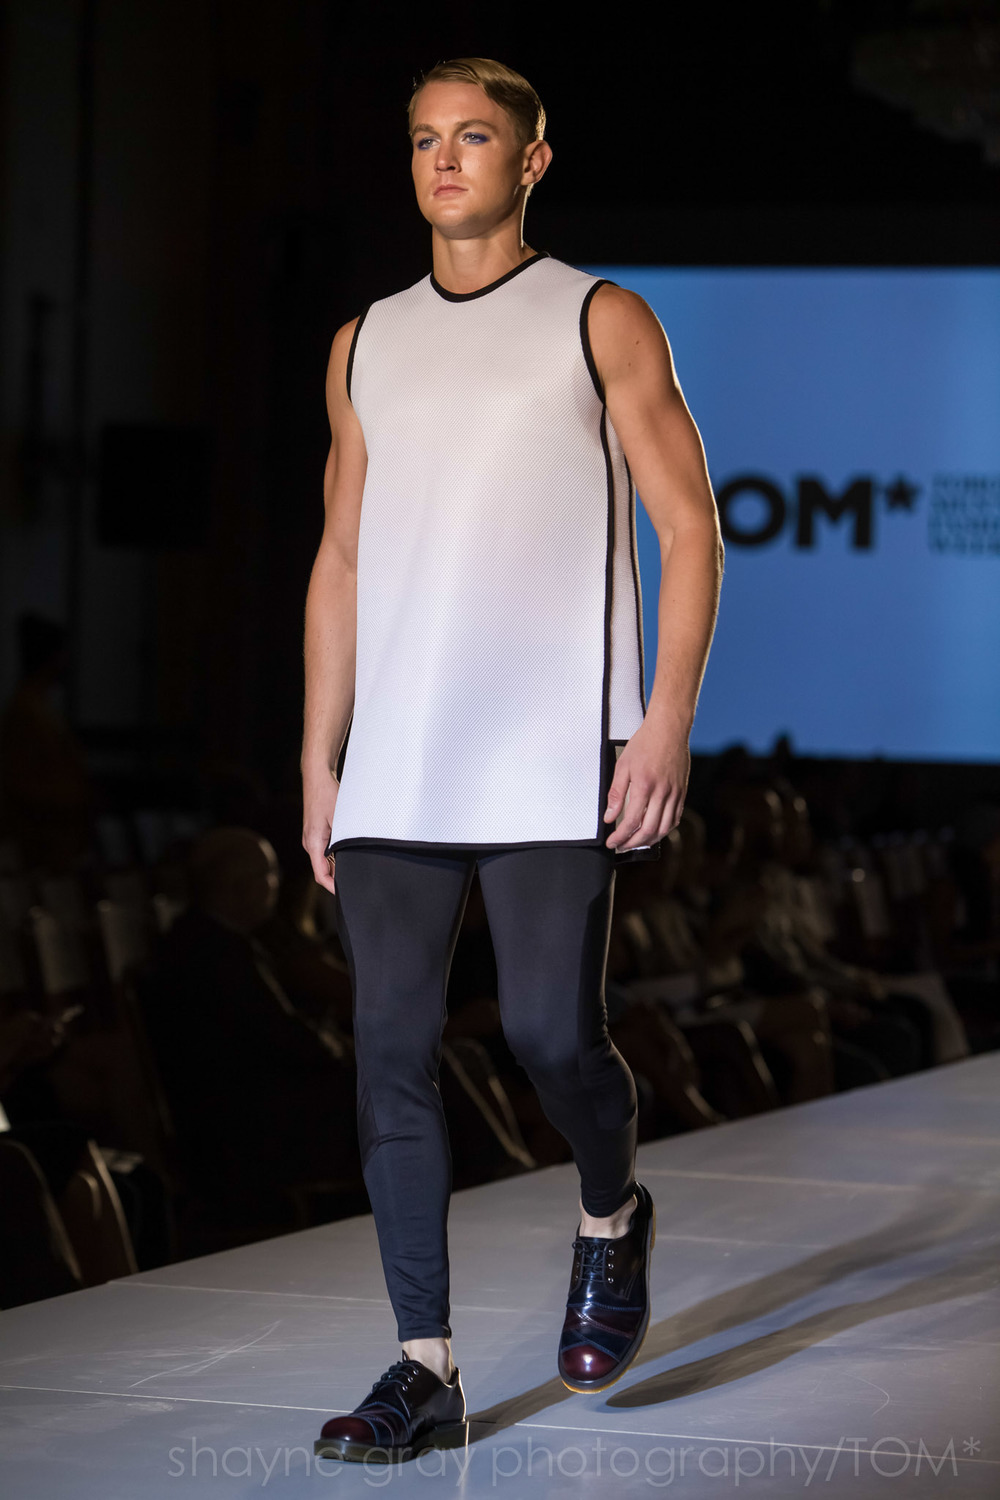 Shayne-Gray-Toronto-men's-fashion_week-TOM-diodati-6176.jpg